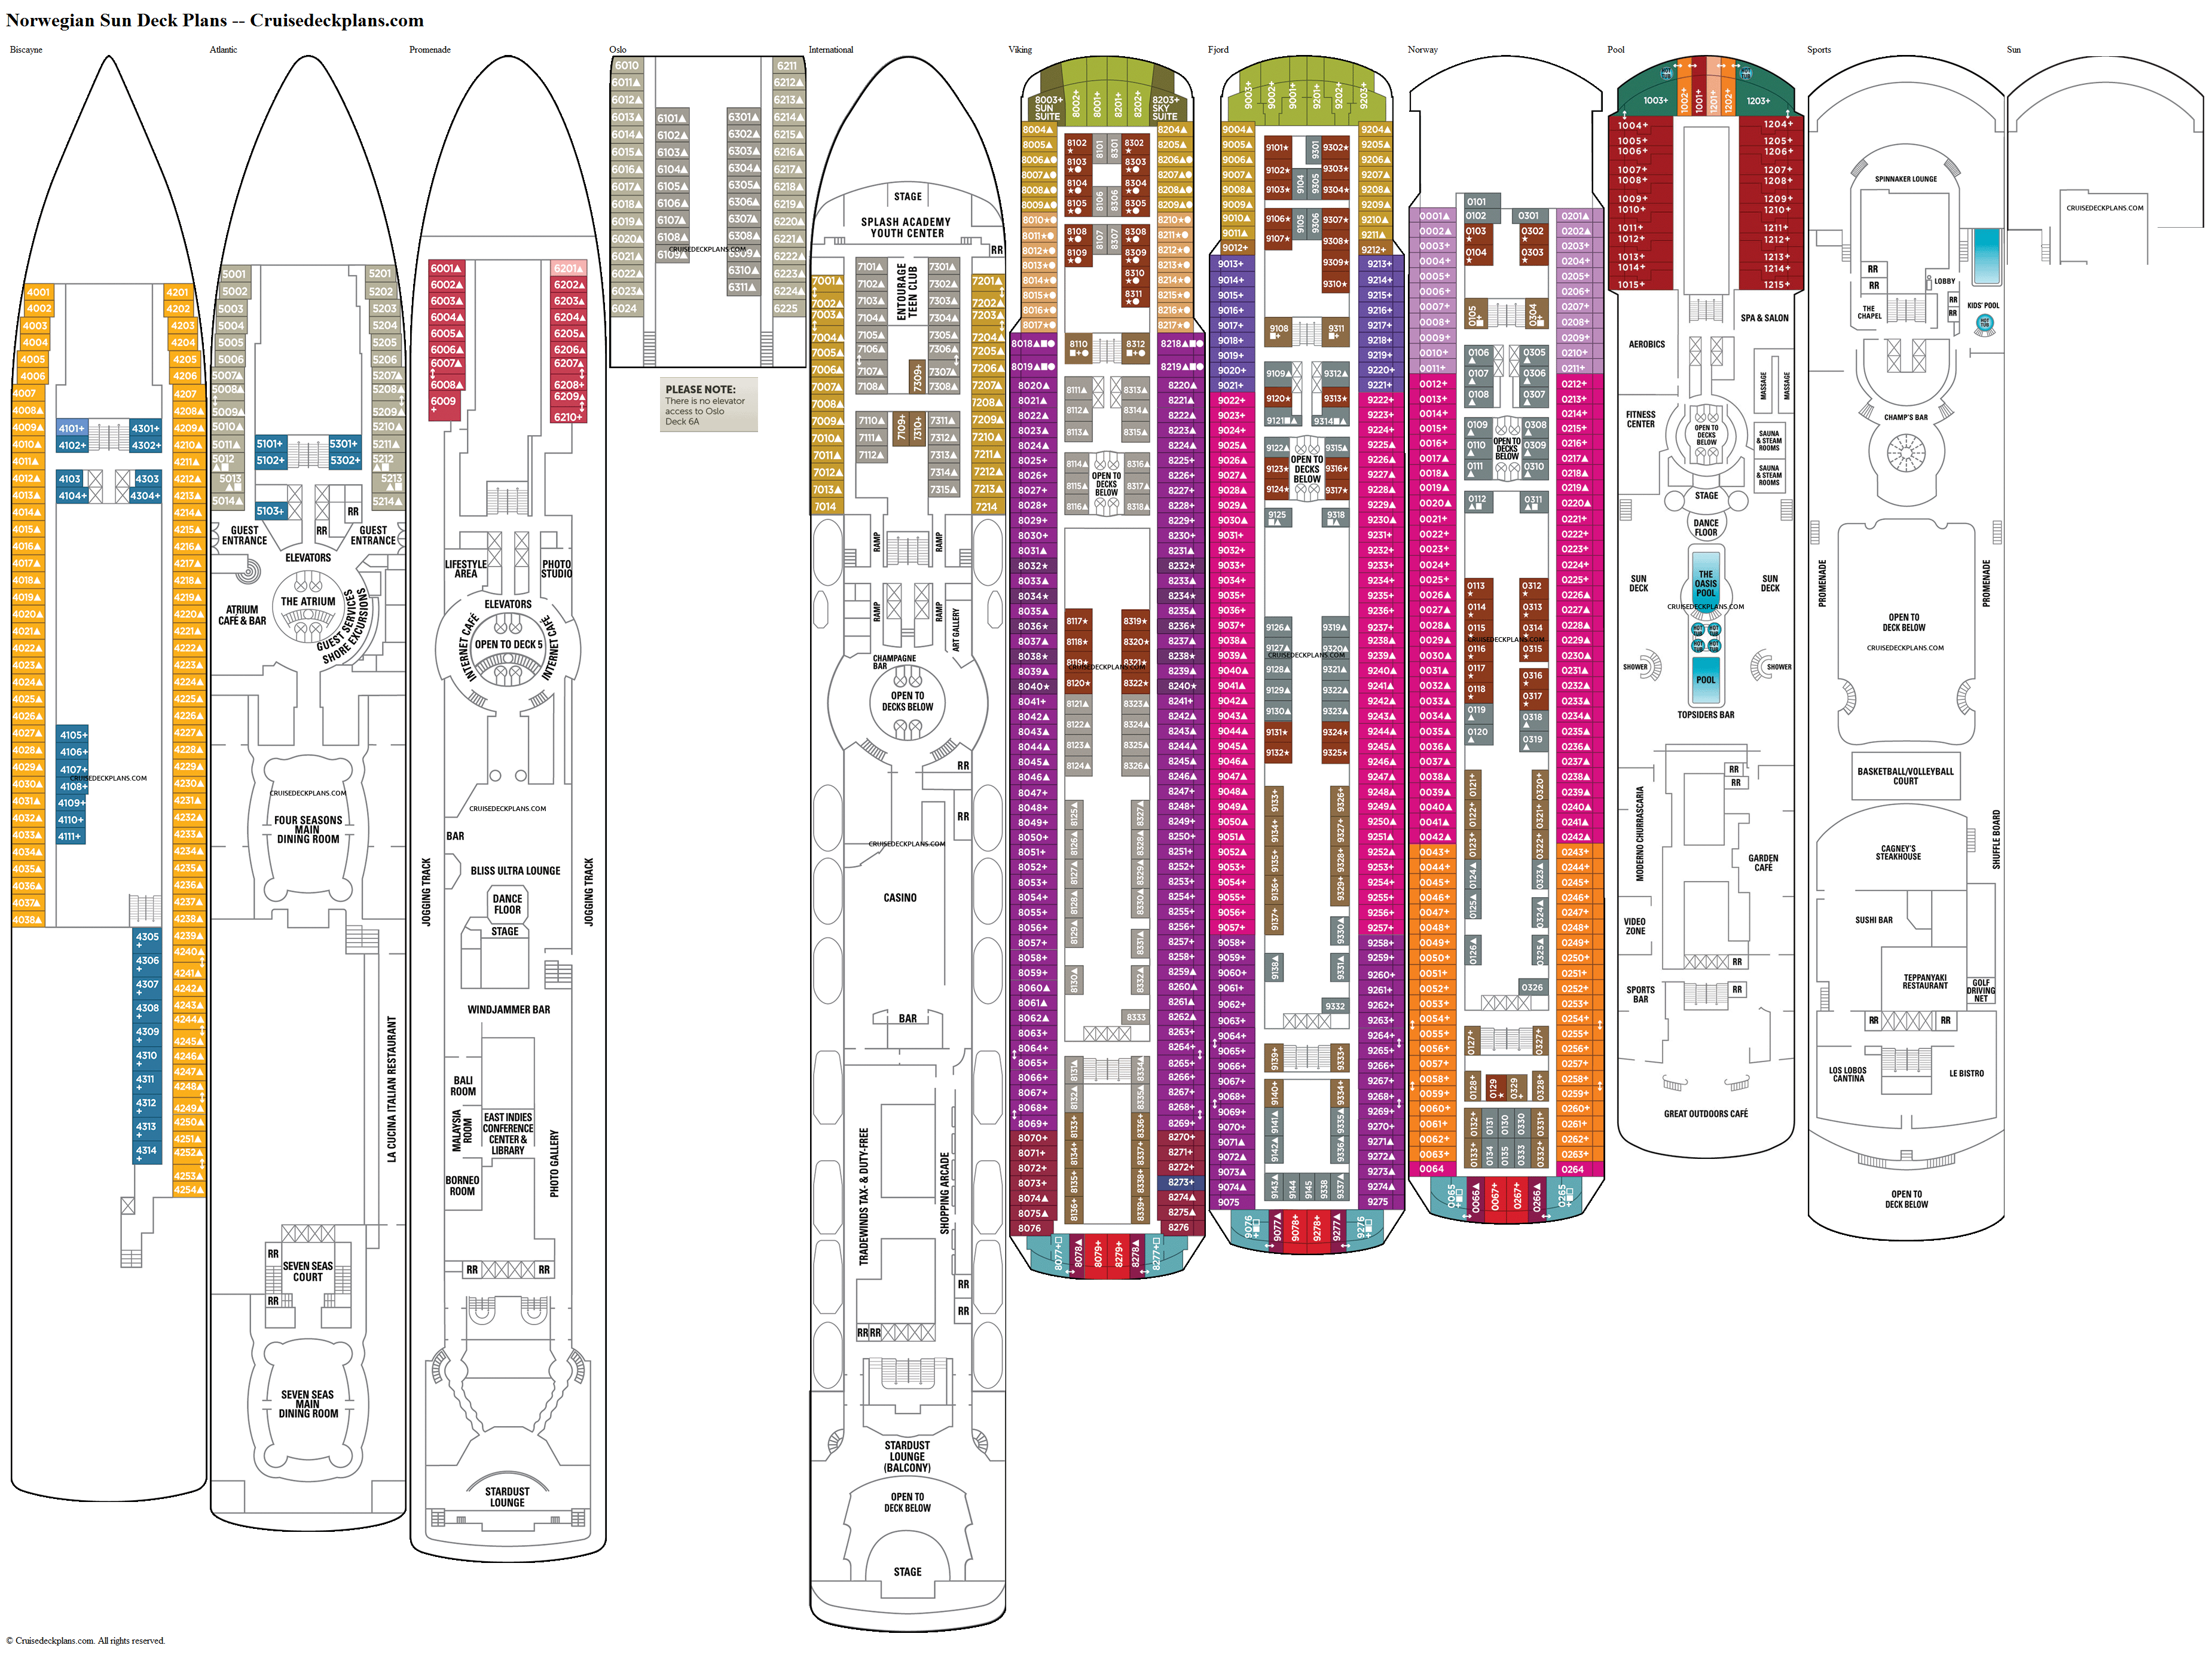 Norwegian Sun deck plans image